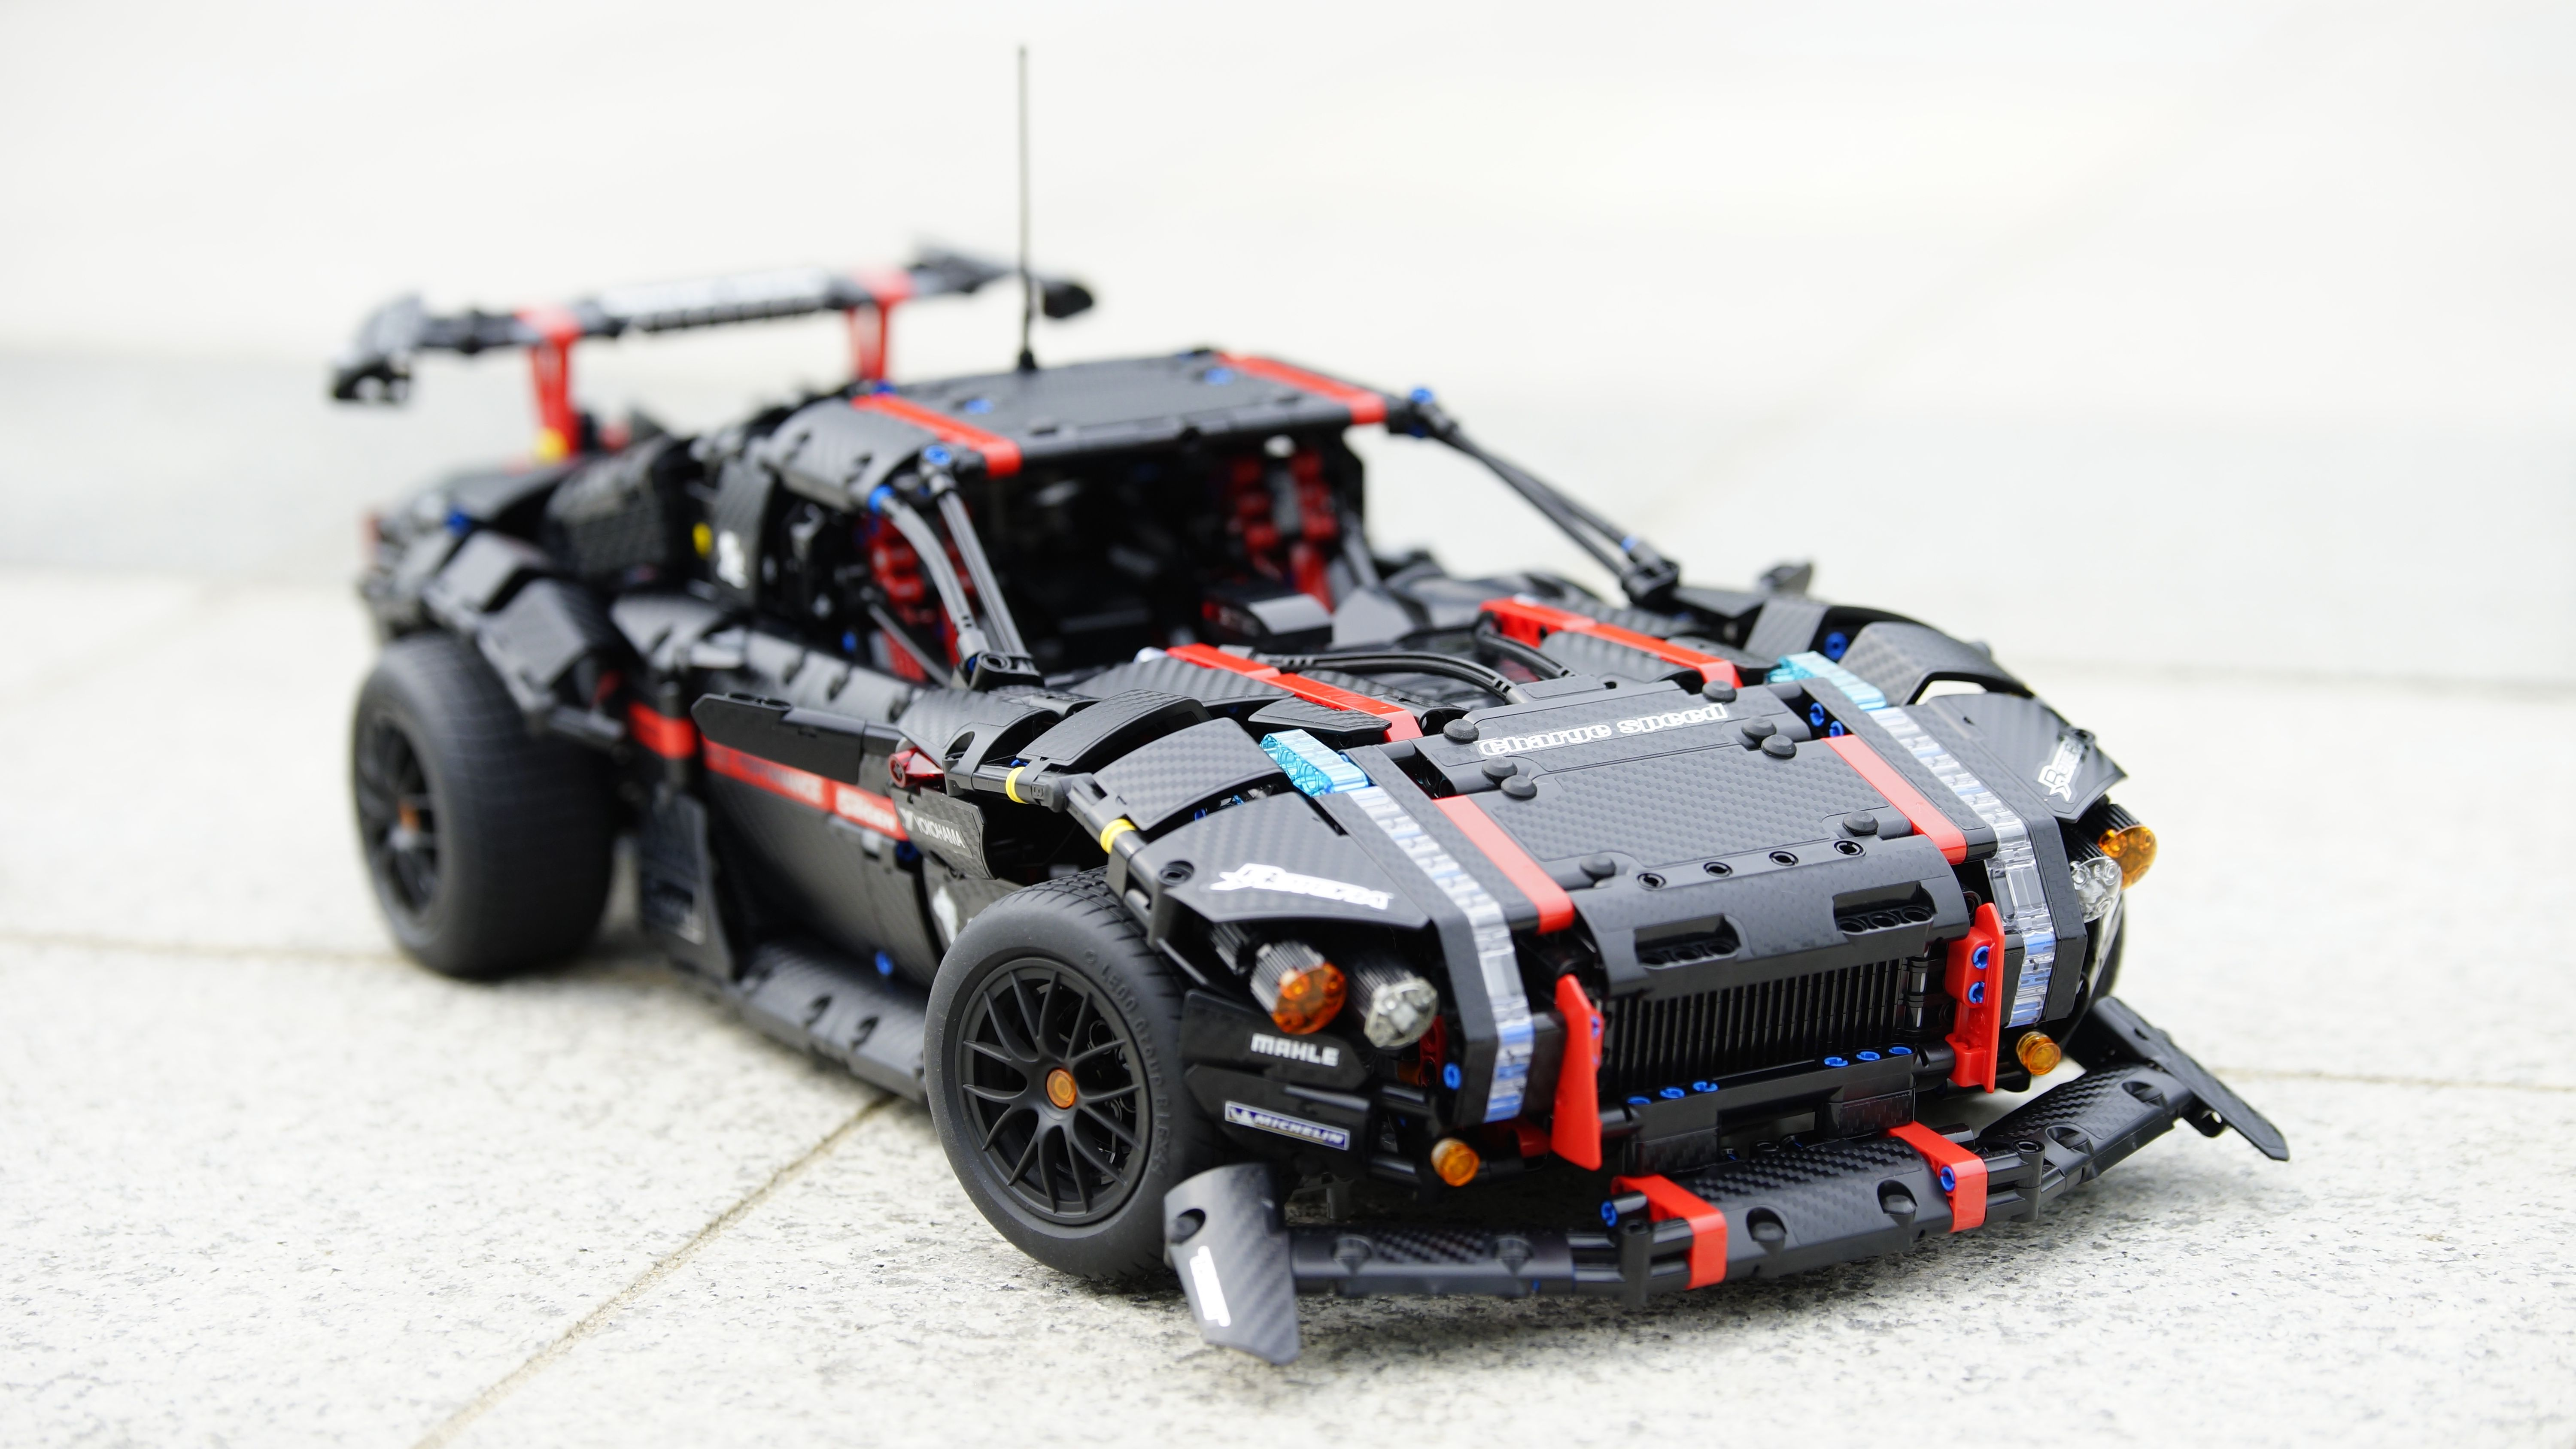 Pin By Zoltán Dobrossi On Lego Vehicles Lego Technic Truck